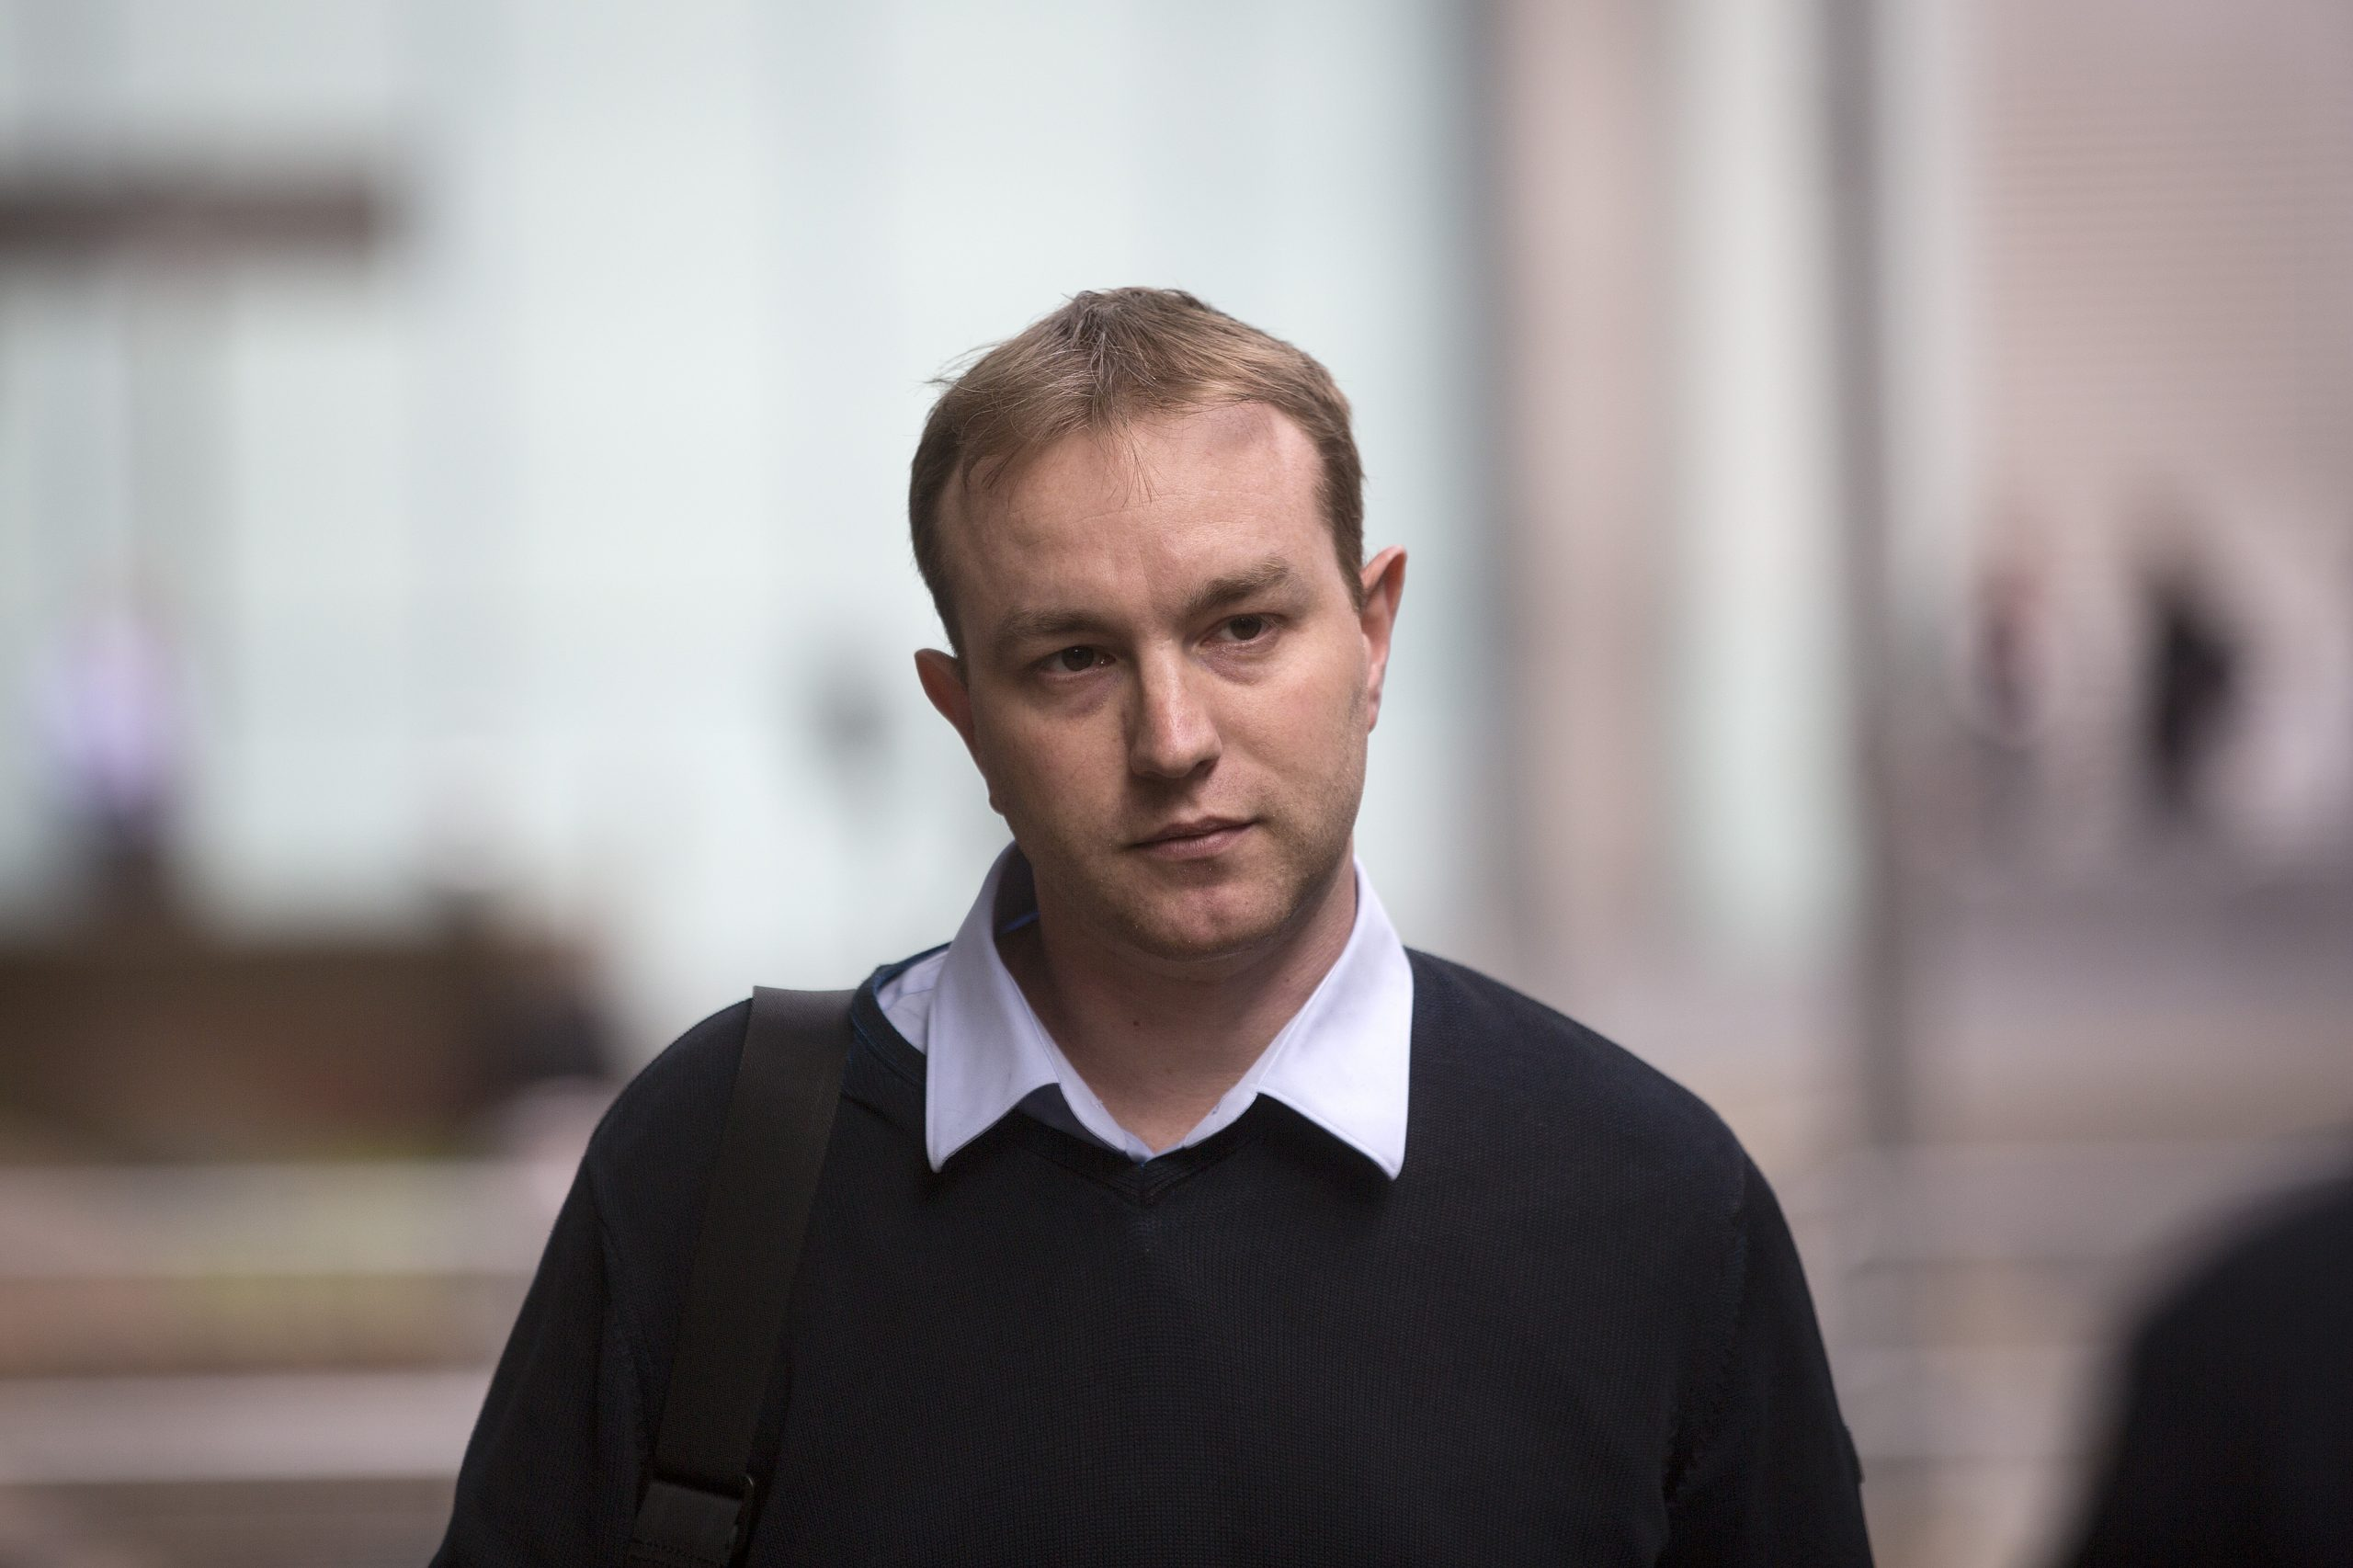 Thomas 'Tom' Hayes, 35, a former trader at banks including UBS Group AG and Citigroup Inc., leaves Southwark Crown Court following the first day of his trial in London, U.K., on Tuesday, May 26, 2015. Hayes was motivated by greed as he colluded with bankers, friends -- and even his half-brother -- to rig benchmark interest rates, prosecutors said at the first trial into the manipulation of Libor. Photographer: Simon Dawson/Bloomberg via Getty Images